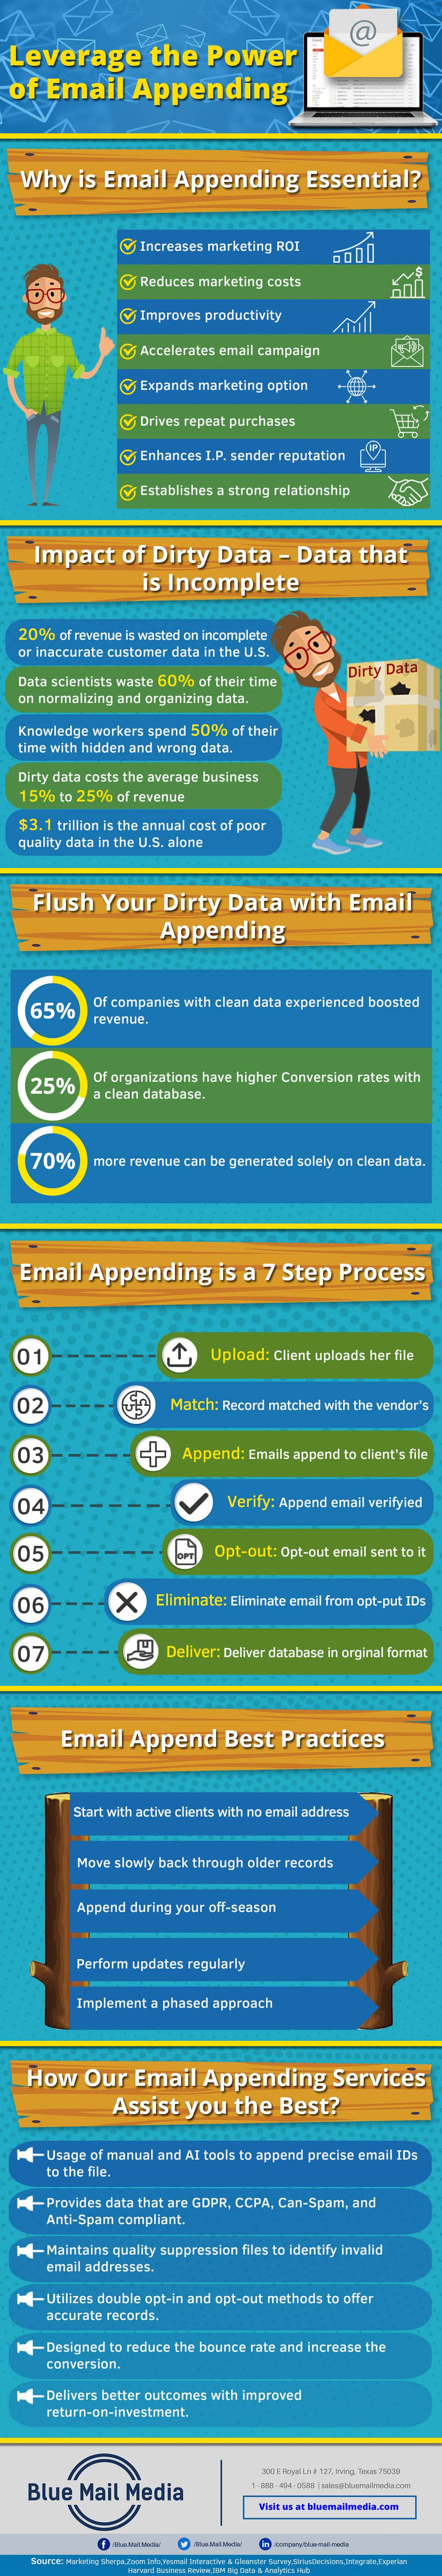 Benefits of Email Appending